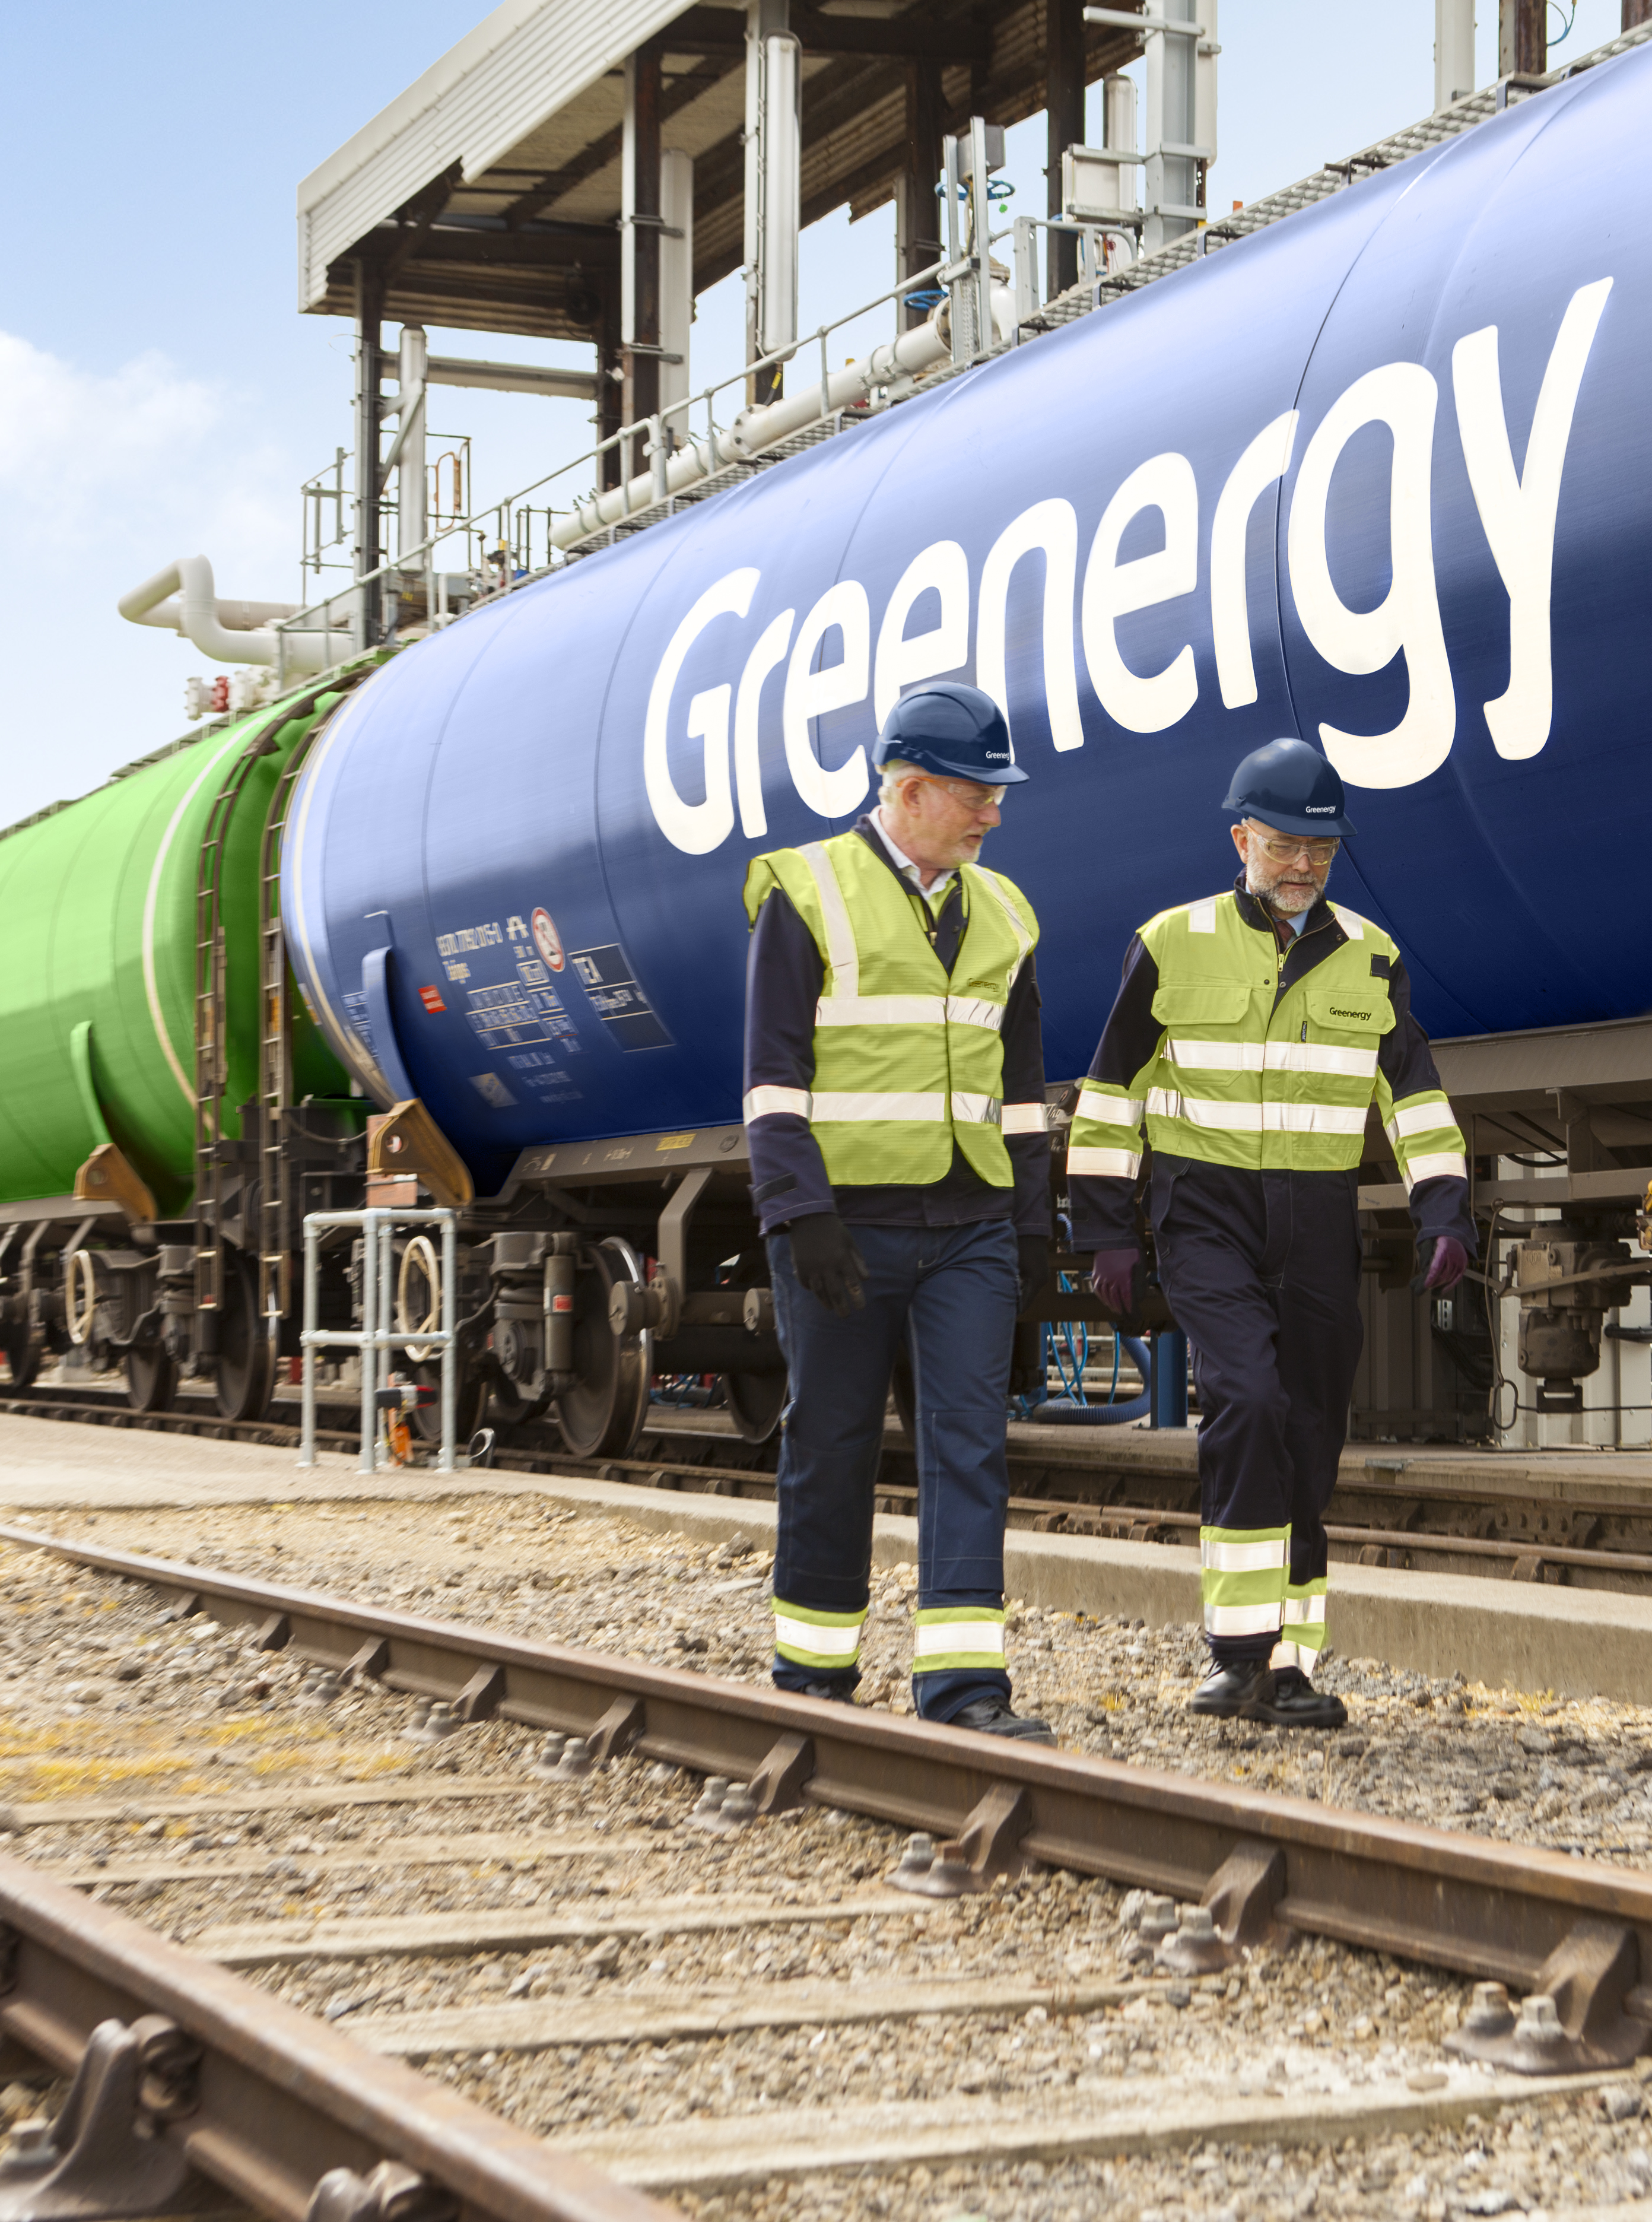 Alex welcomes Greenergy investment in fuel infrastructure on Teesside